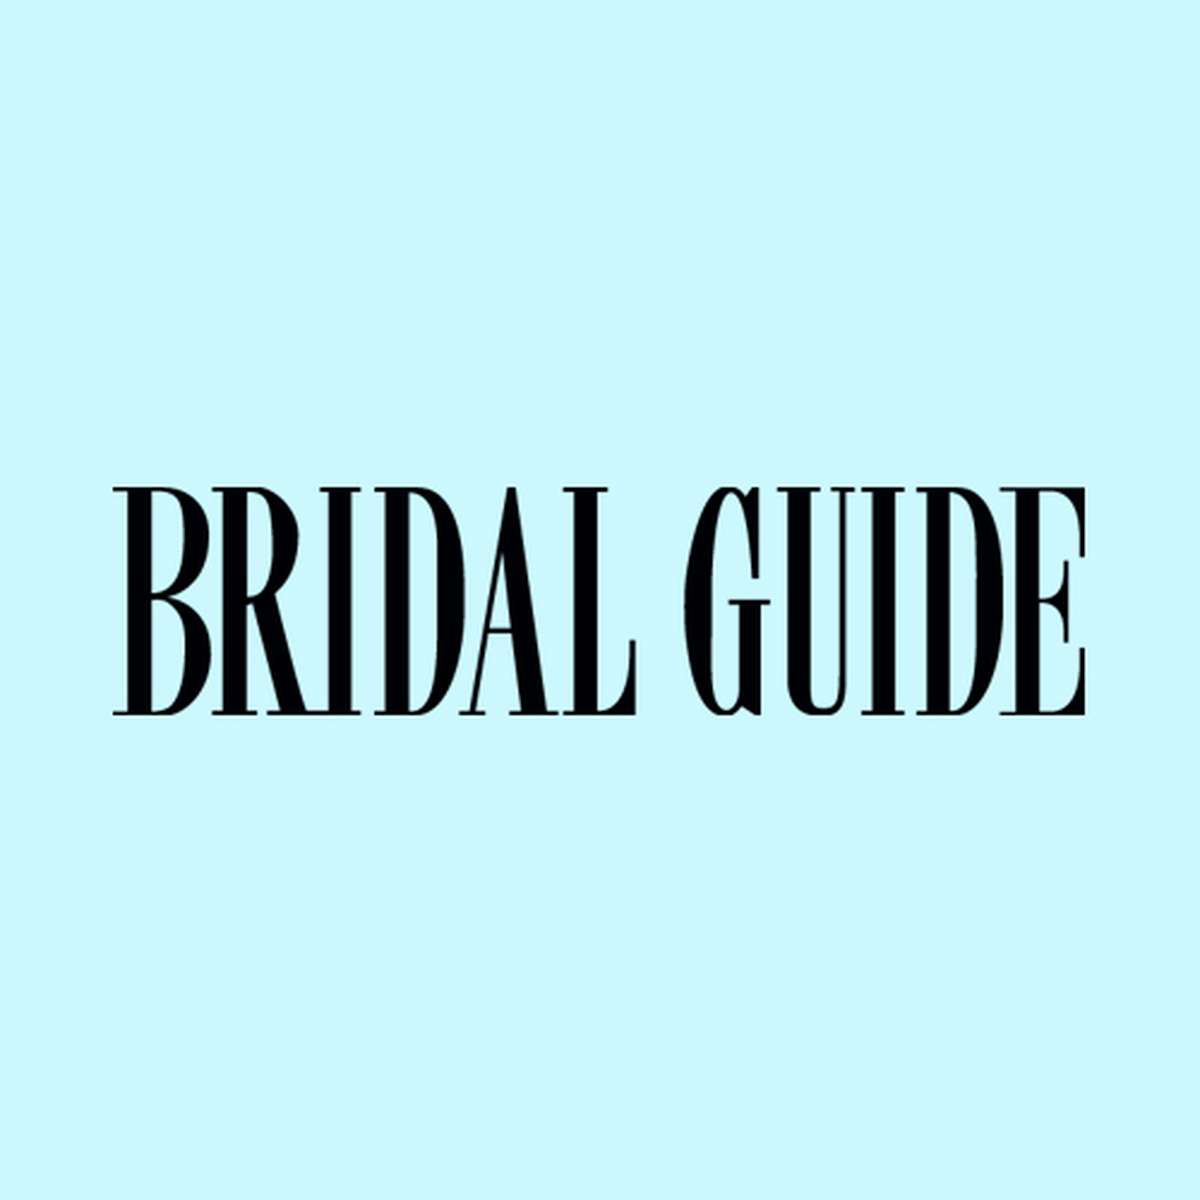 Bridal Guide Tip personalized product